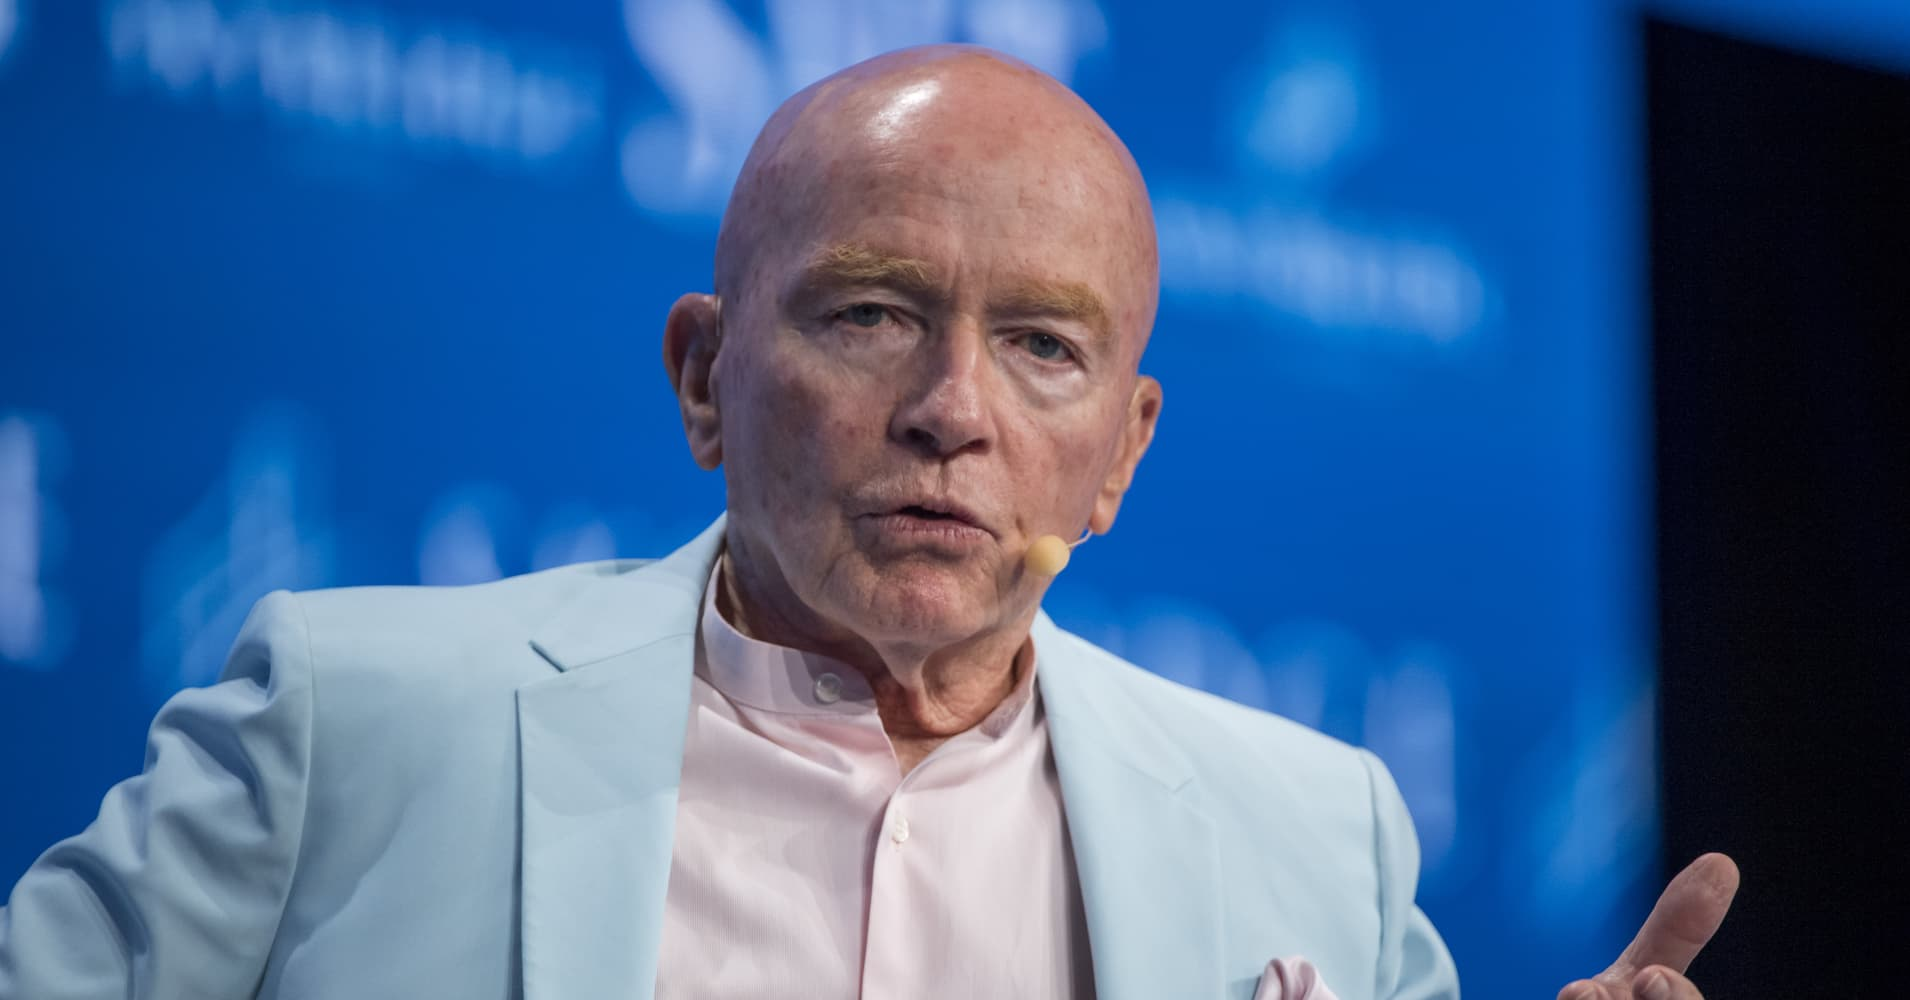 Mark Mobius says Brexit could be 'terrific' for emerging markets